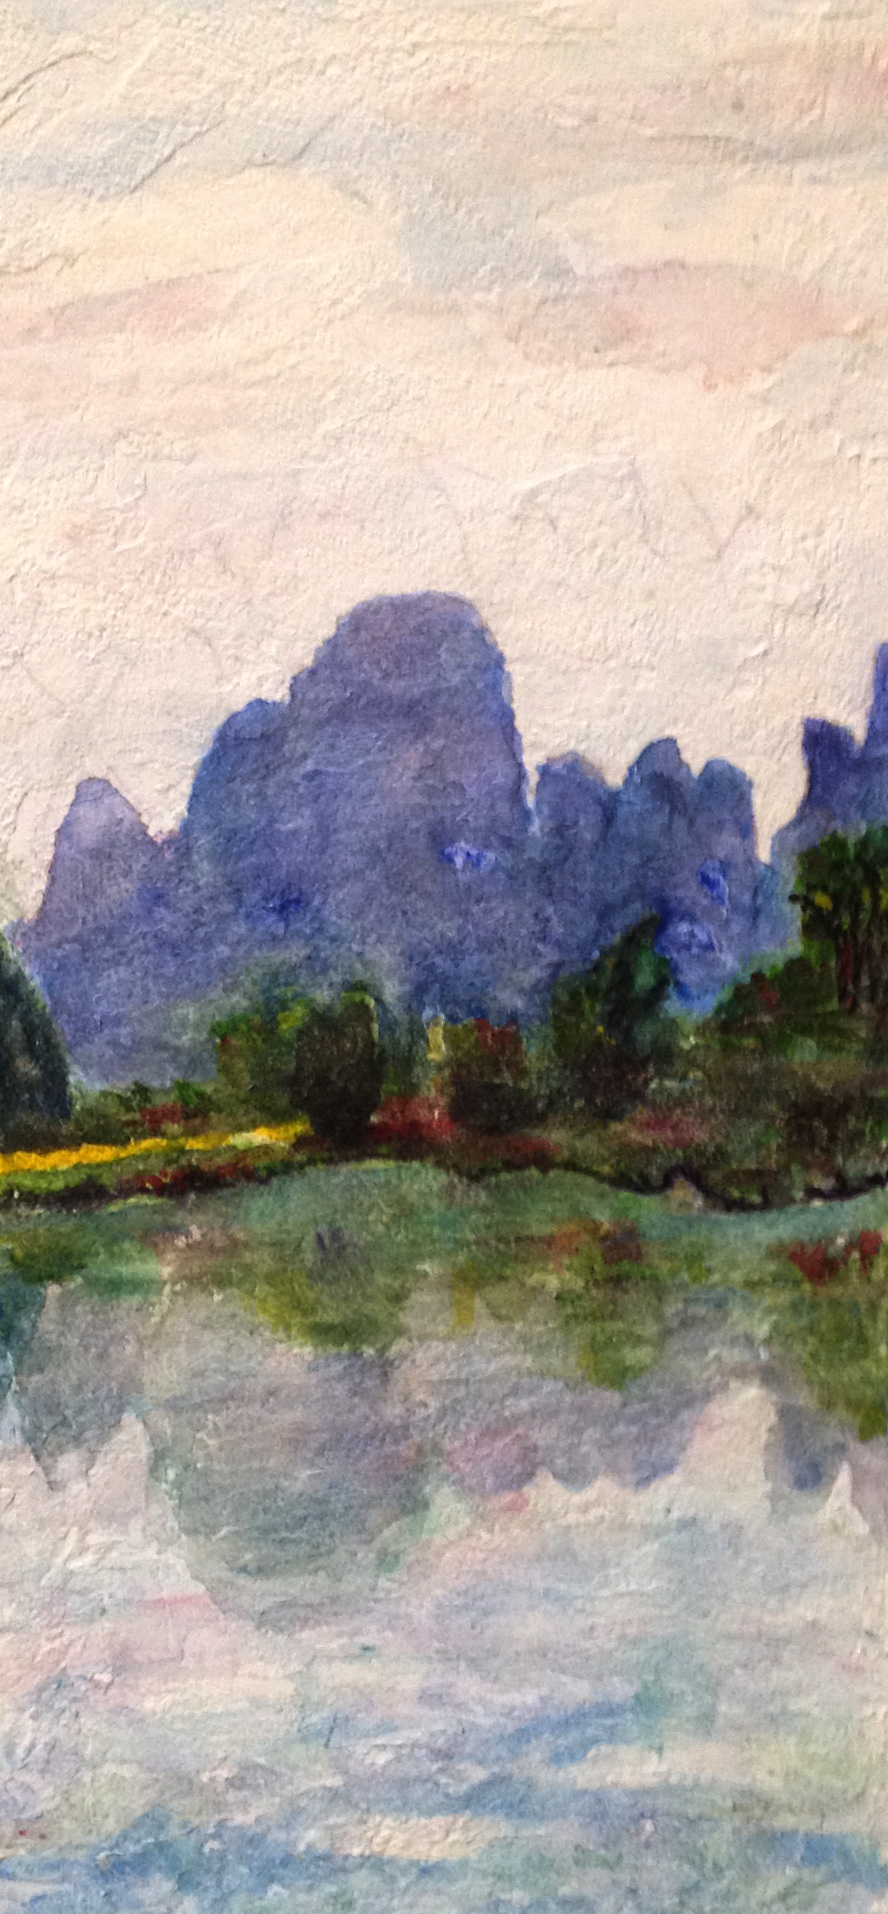 China Landscape - Watercolor